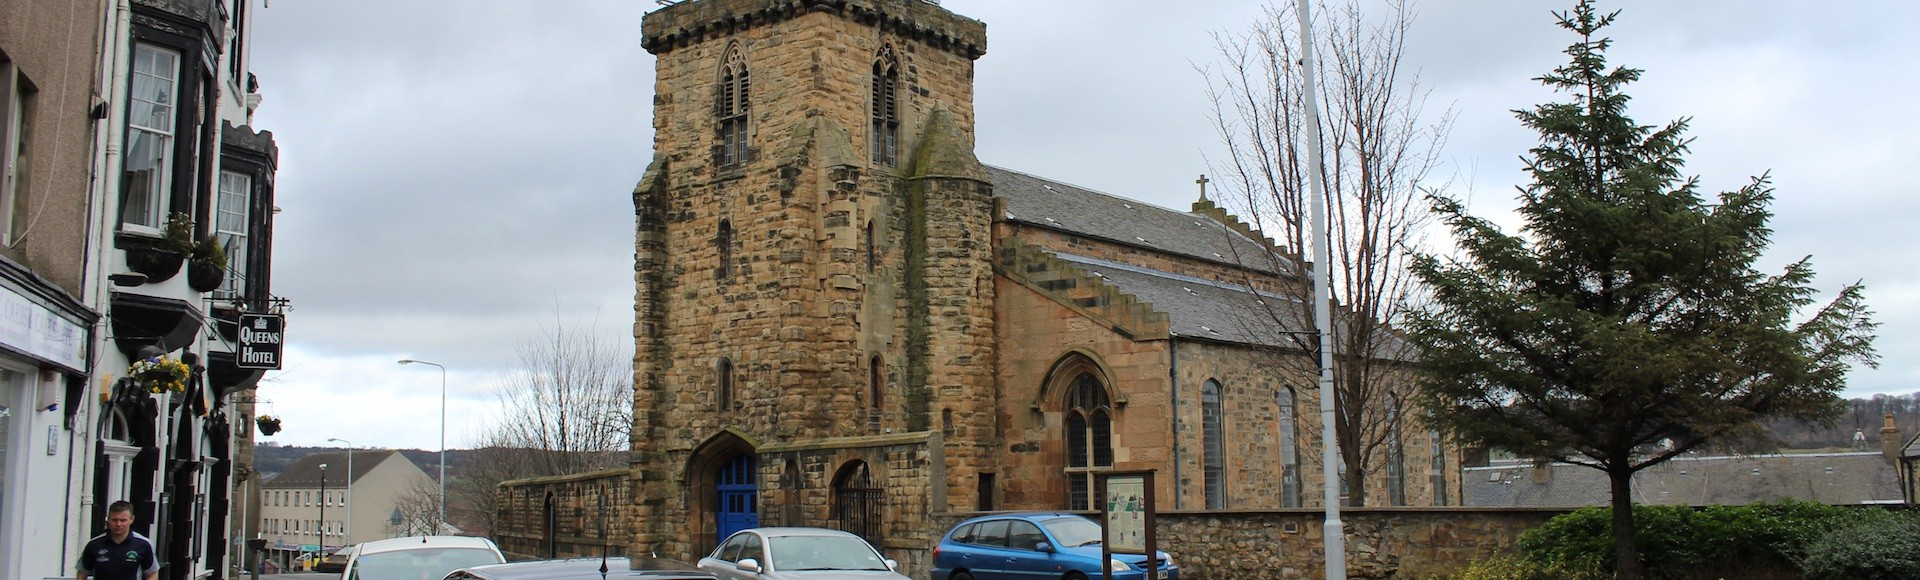 Inverkeithing Parish Church